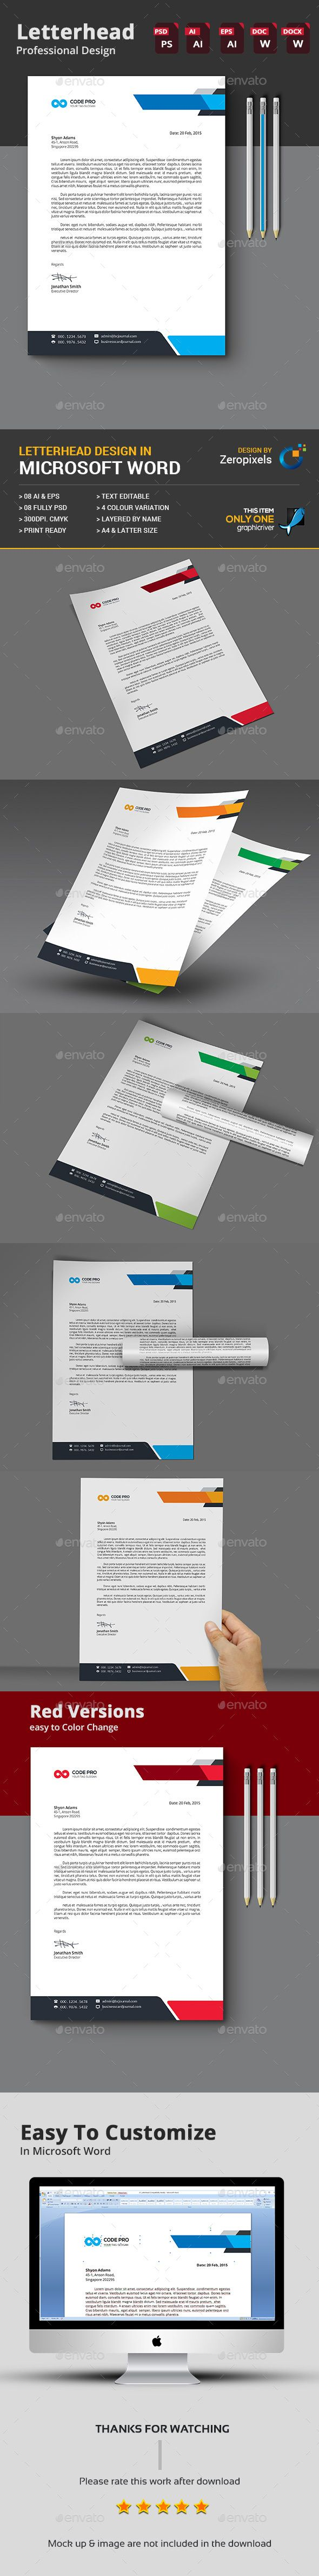 Letterhead Design Template PSD, Vector EPS, AI Illustrator, MS Word